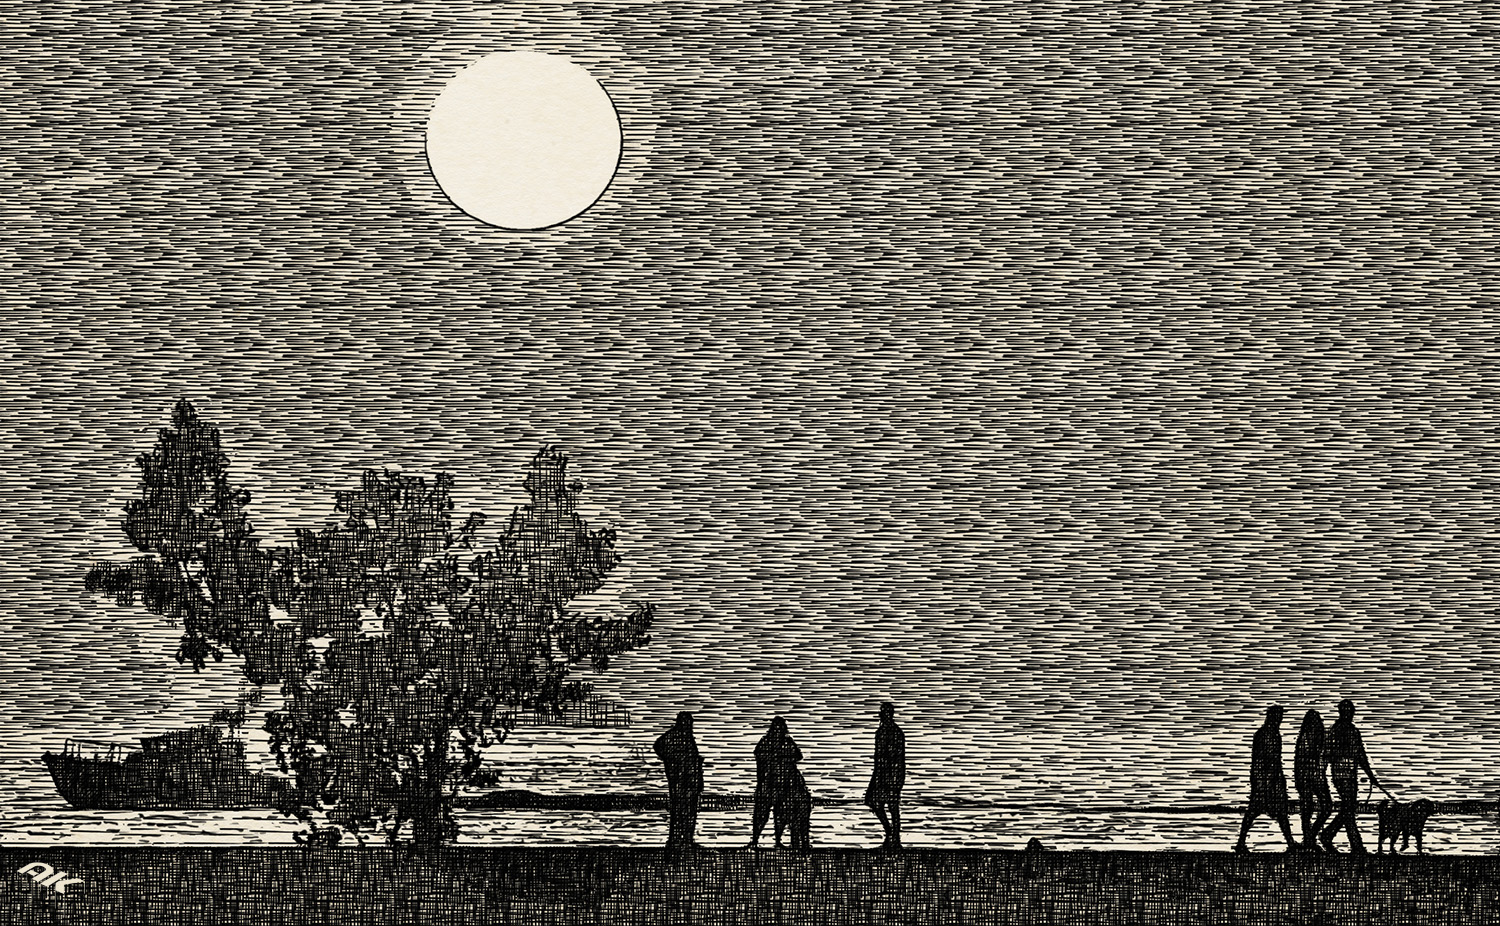 Silhouettes-Engraving-5-copyright-andrew-knutt